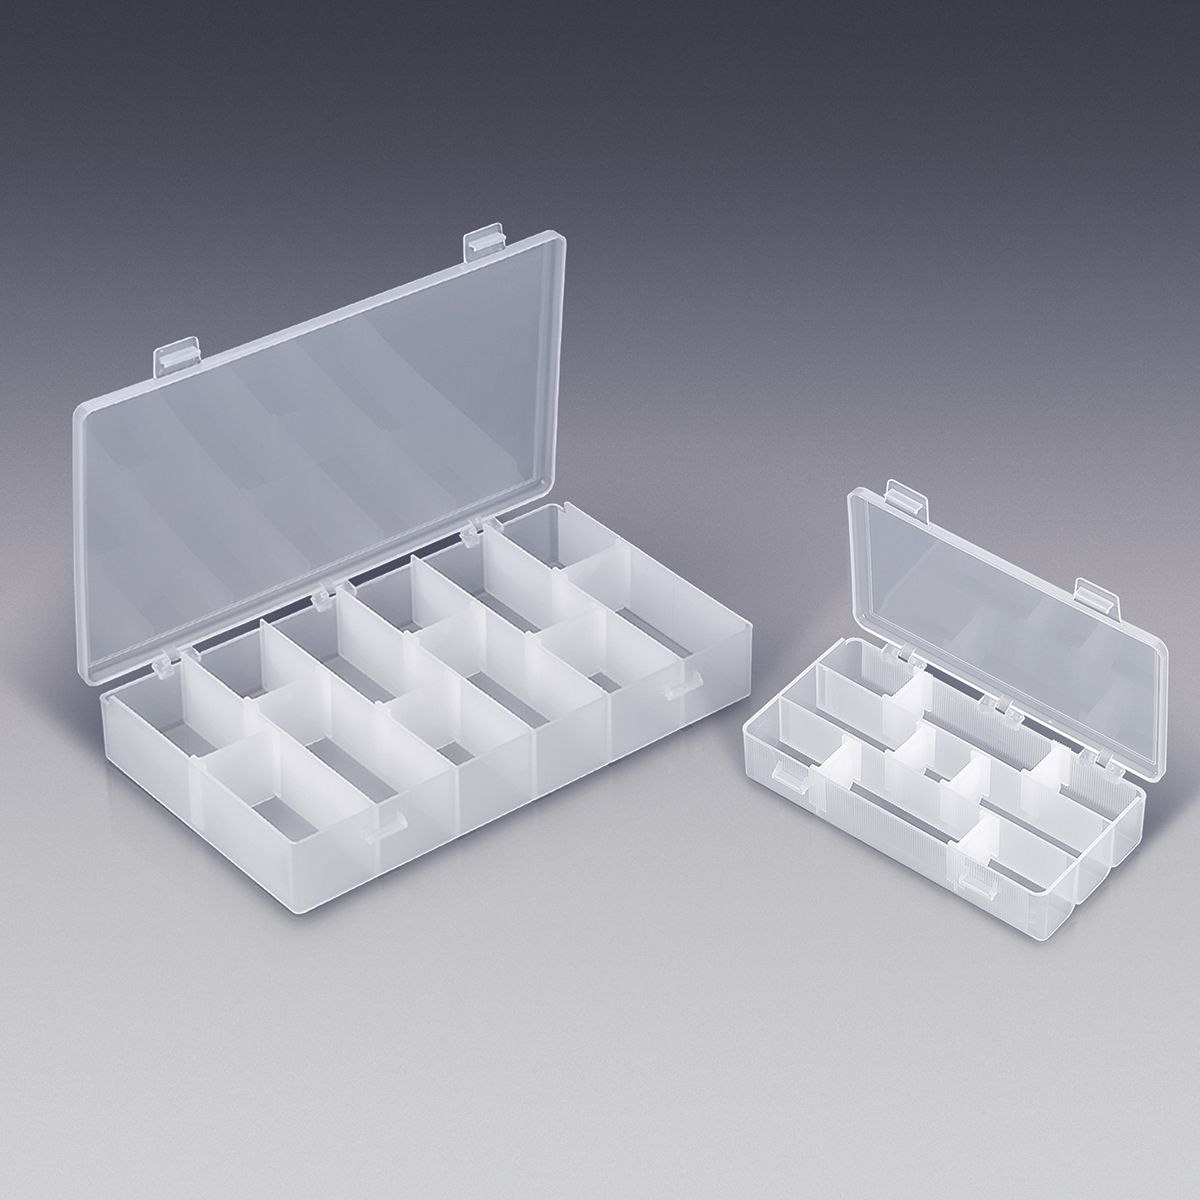 Ready to Fill! These empty beauty supply organizers are perfect for storing your disposable cosmetic applicators and hair accessories such as bobby pins, hair pins, duck bill clips and hair bands.